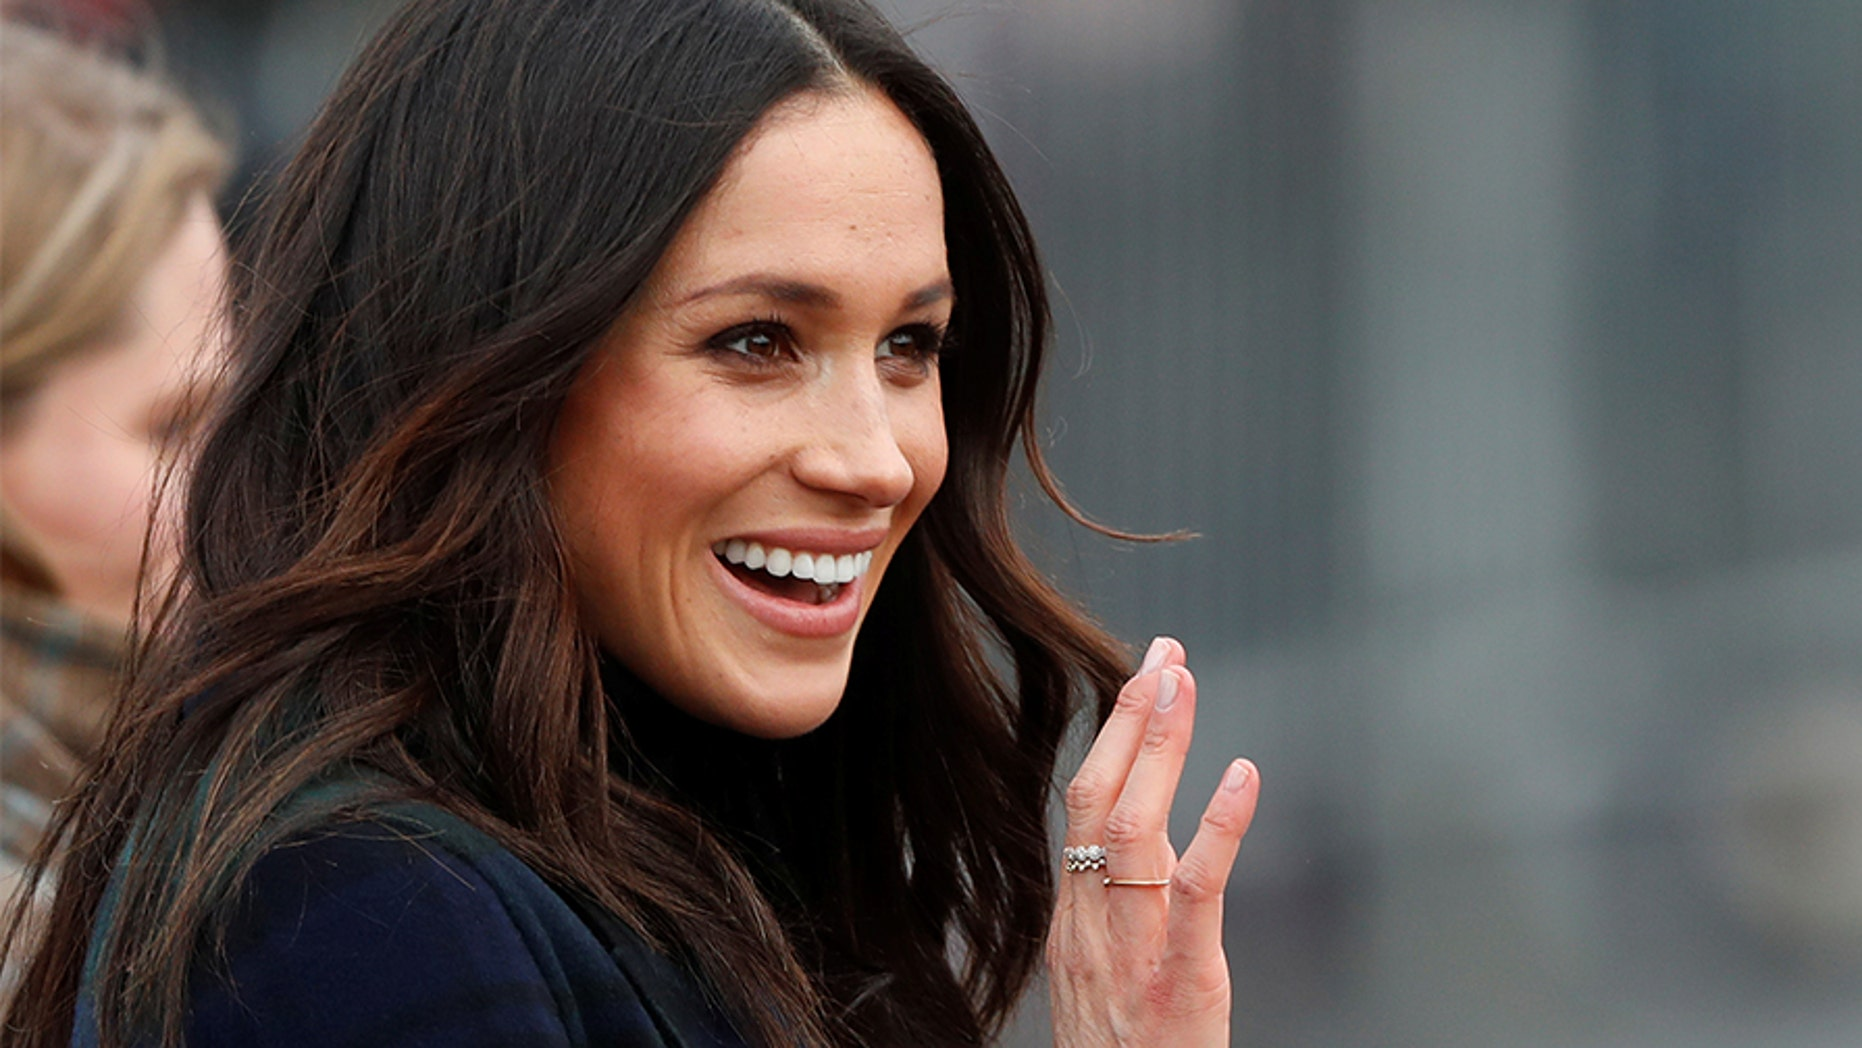 Meghan Markle, fiancee of Britain's Prince Harry, waves as she arrives for a visit to Edinburgh, Scotland February 13, 2018.